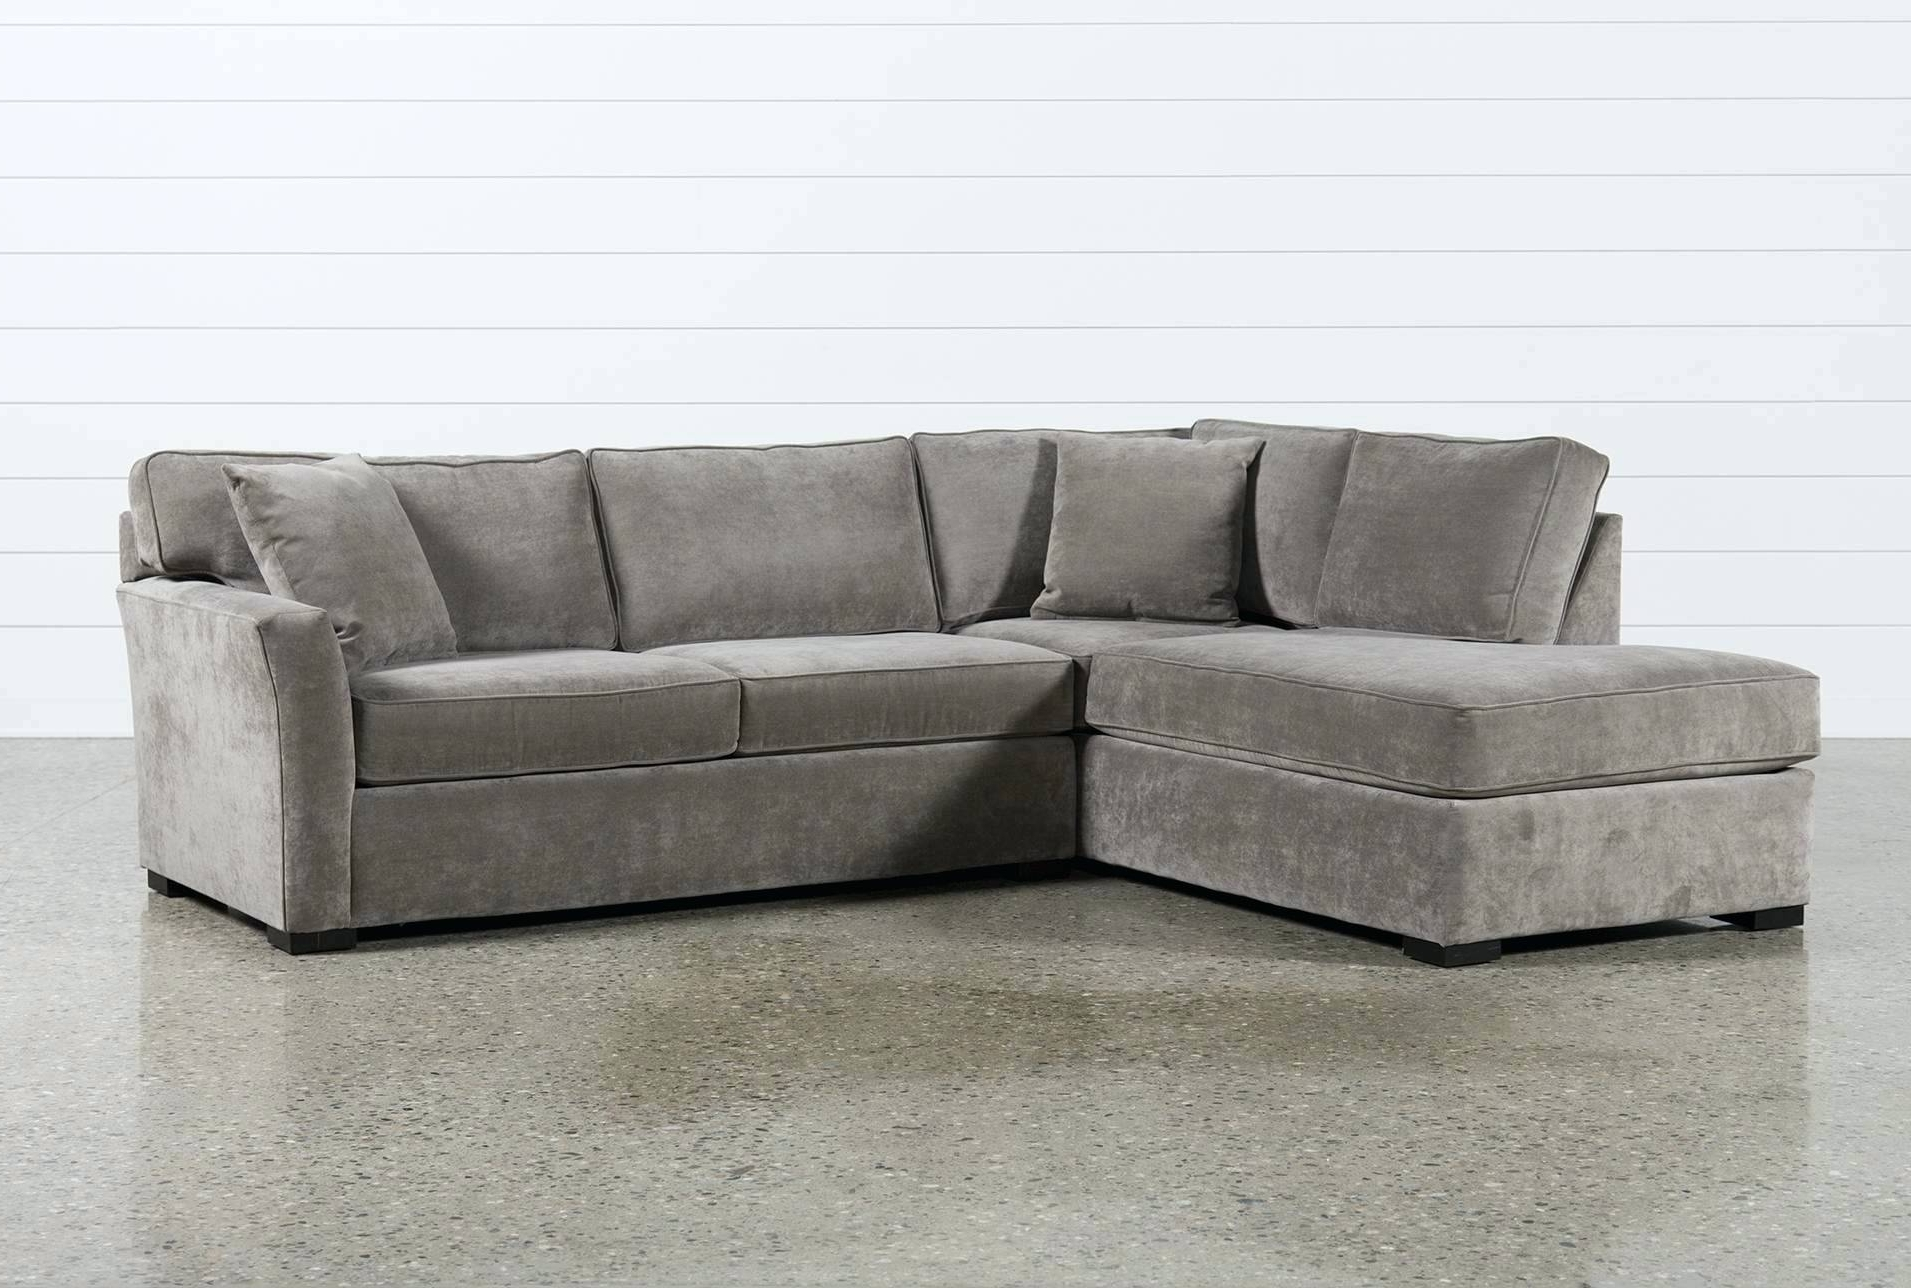 Most Current Nashville Sectional Sofas Inside Sleep Sofas Sleeper Sectional Rooms To Go Sofa For Sale In (View 10 of 15)